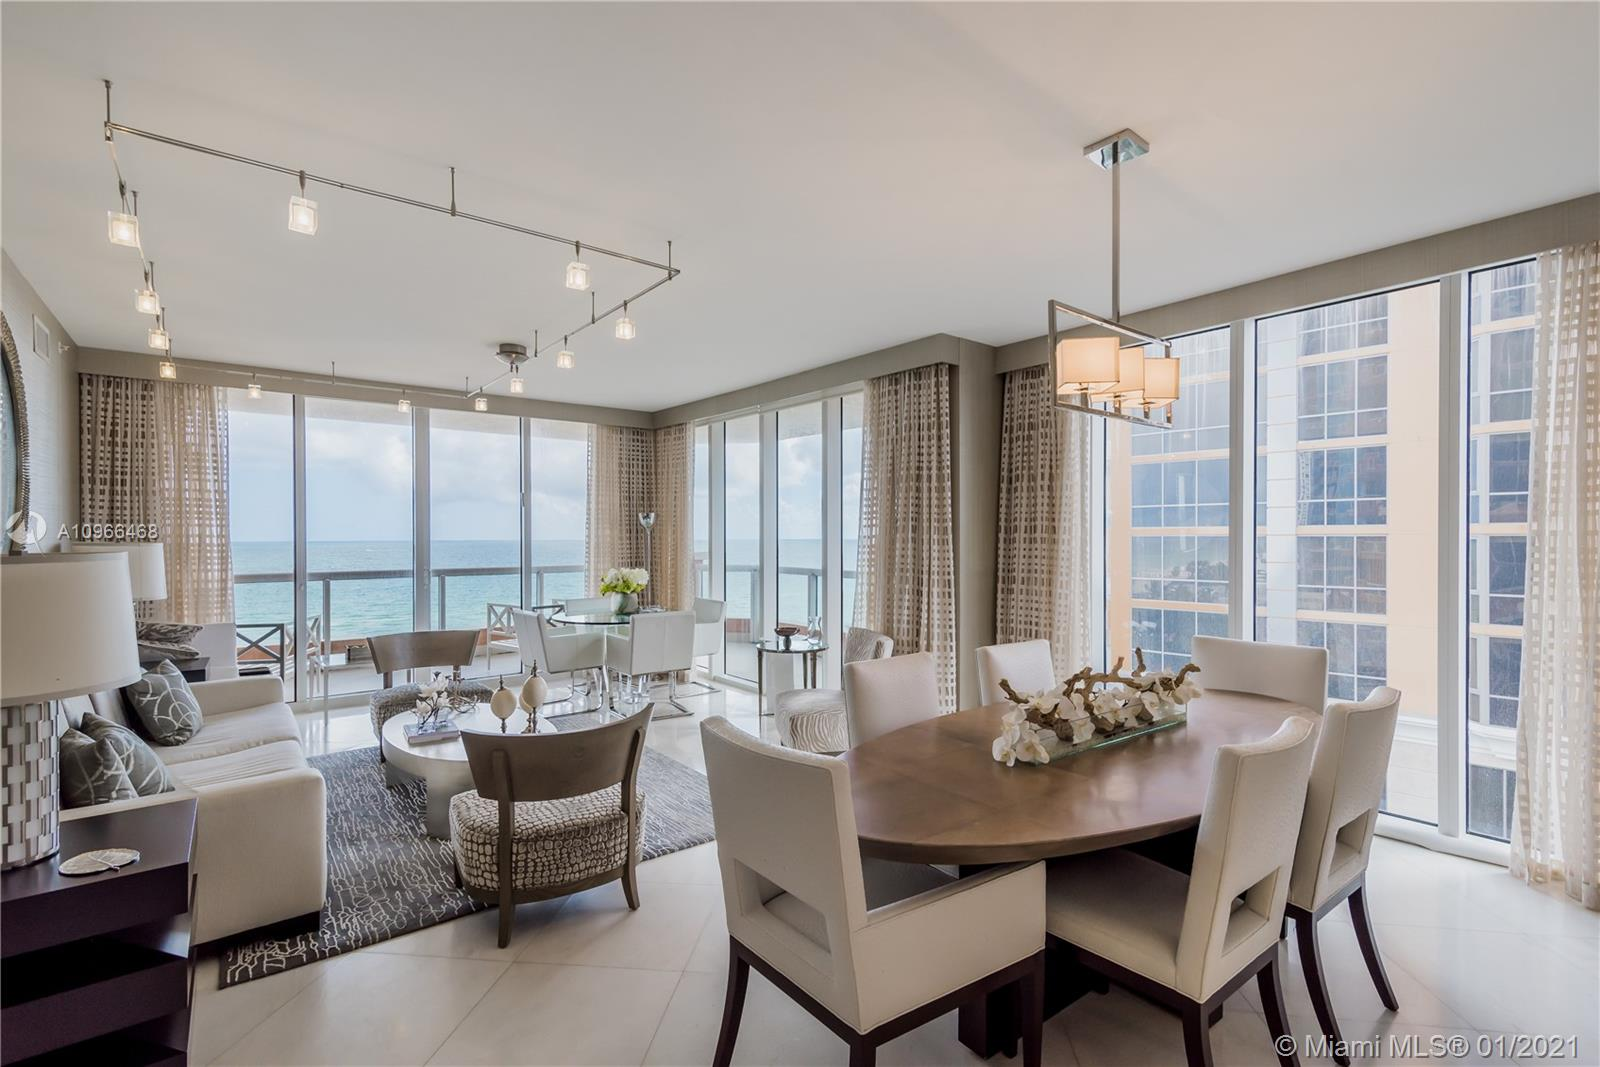 Spectacular Oceanfront corner residence in Acqualina designed by famous interior designer Fanny Haim!  Turnkey unit, ready for you and your family to enjoy what Acqualina has to offer and t's five star, five diamond services and lifestyle.